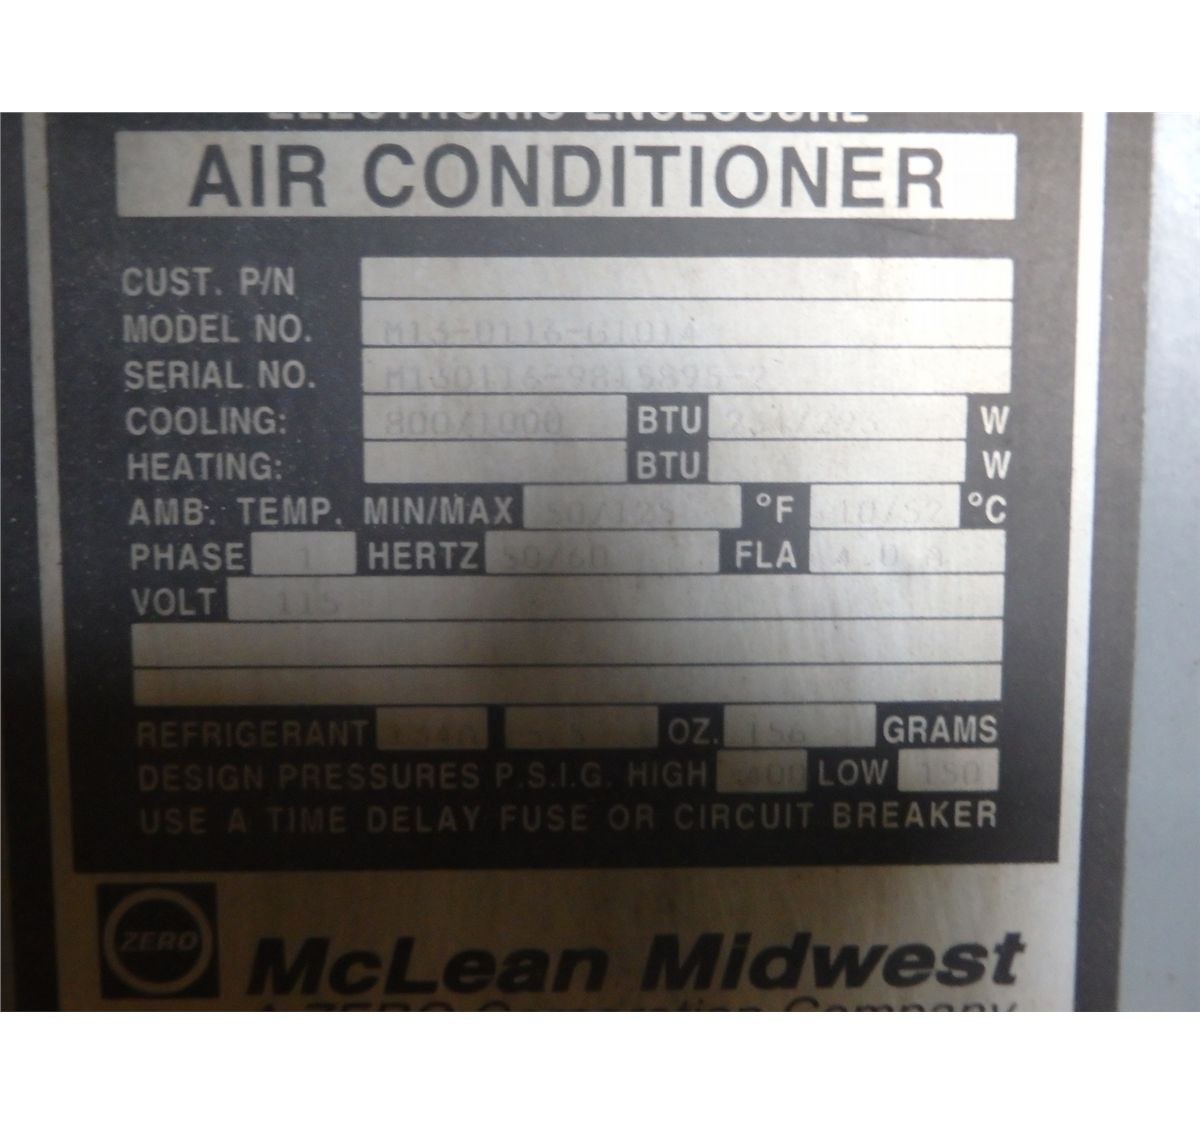 medium resolution of  image 7 mclean midwest m13 0116 g1014 electrical box chiller air conditioner